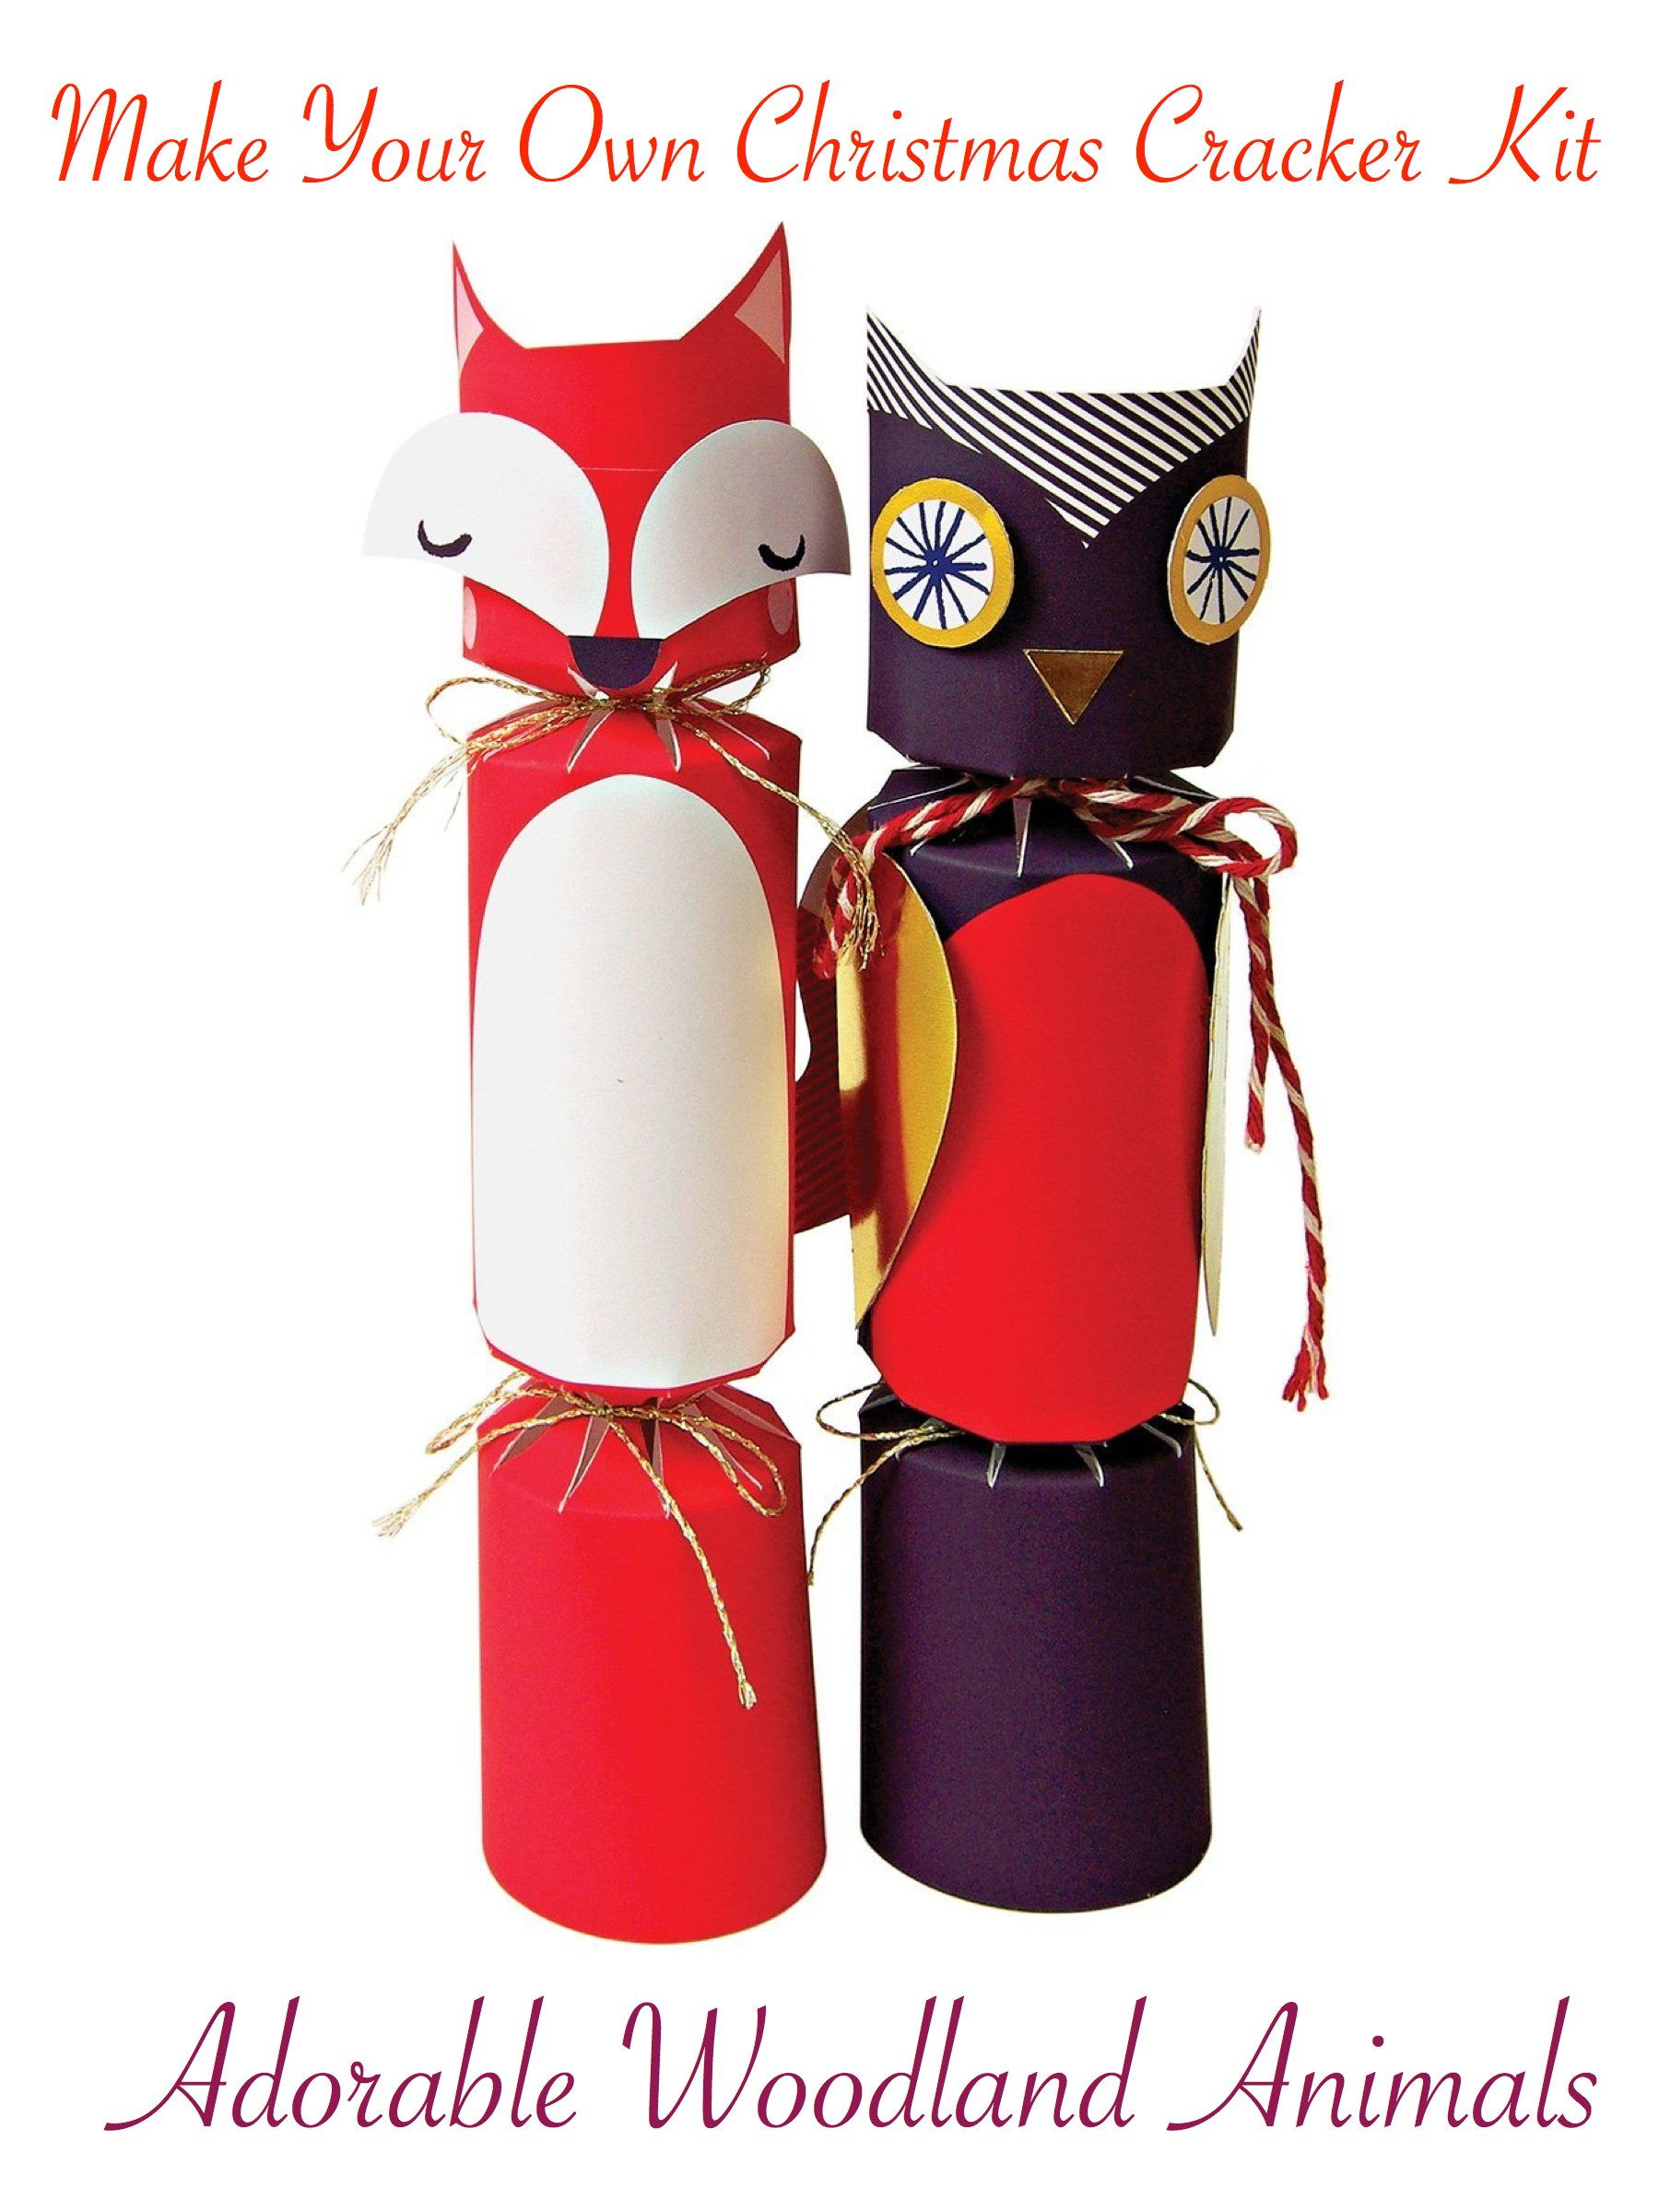 DIY Woodland Animals Christmas Cracker Kit